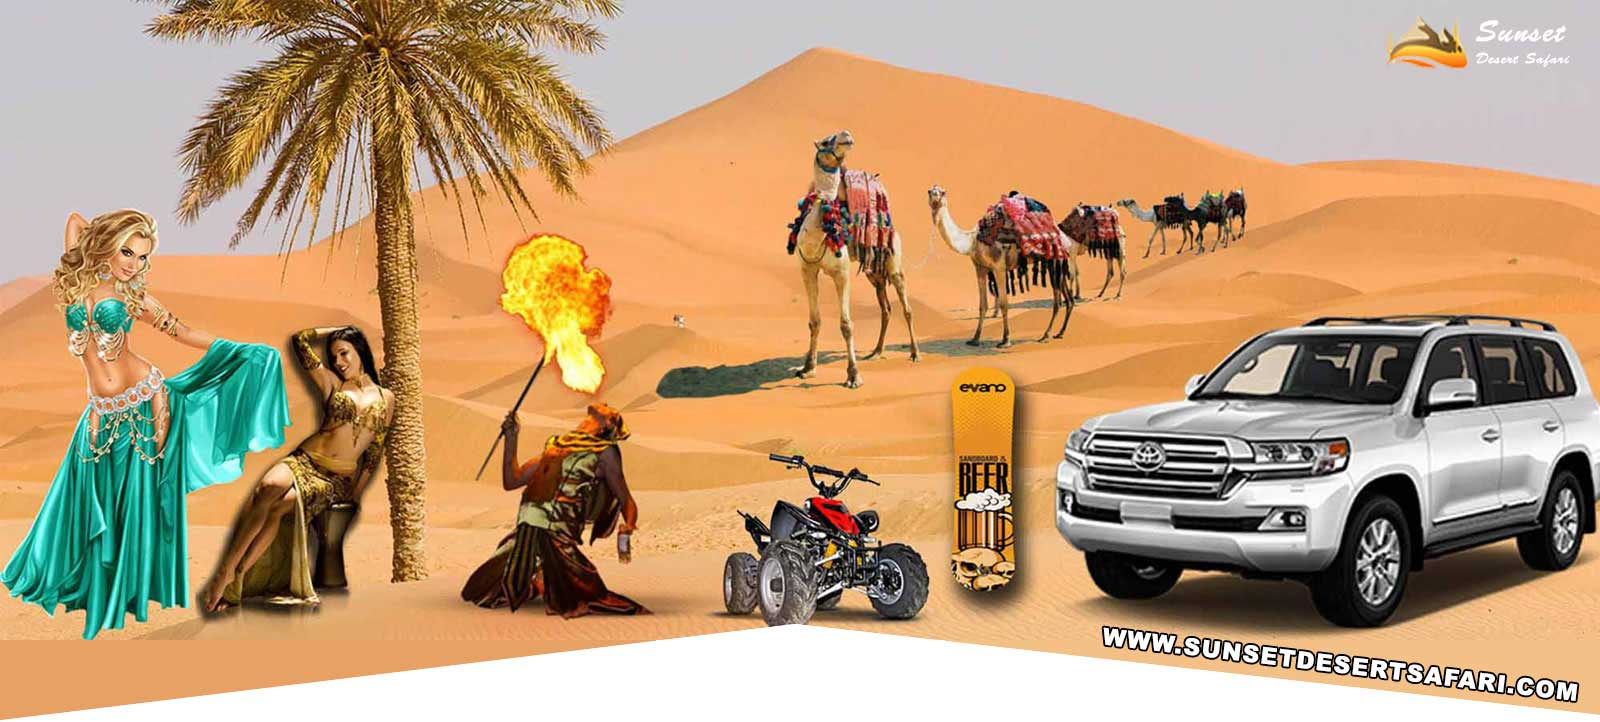 Sunset Desert Safari, Desert Safari Dubai, Desert Safari Deals, Desert Safari, Dubai Desert Safari, Evening Desert Safari, Desert Safari Tours